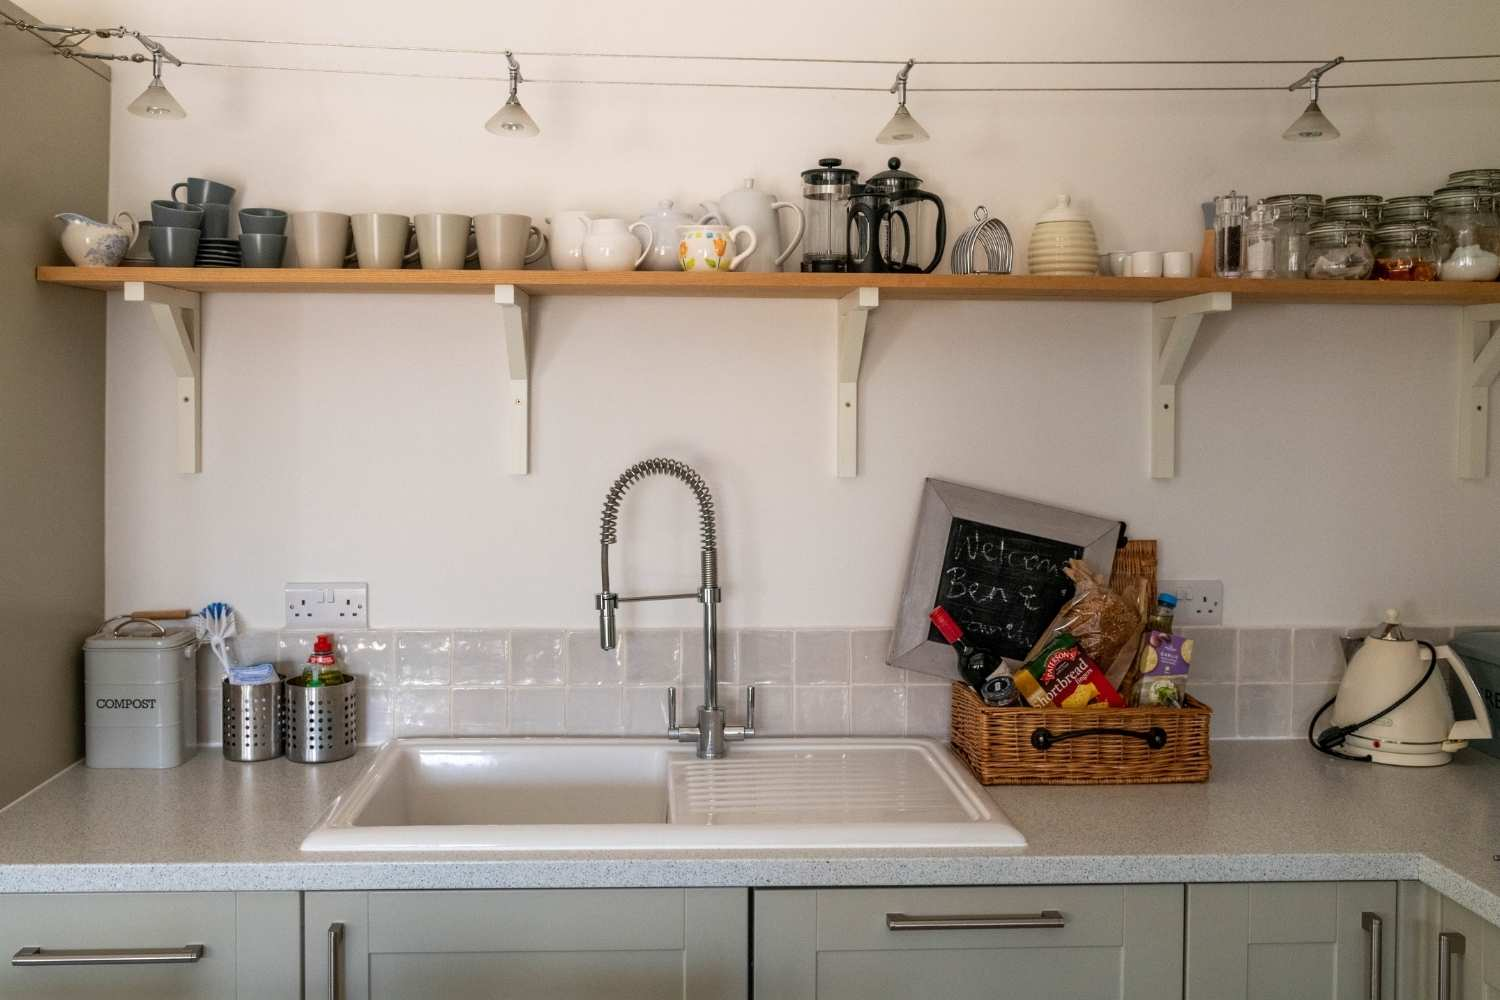 Your well equipped kitchen will be a home from home